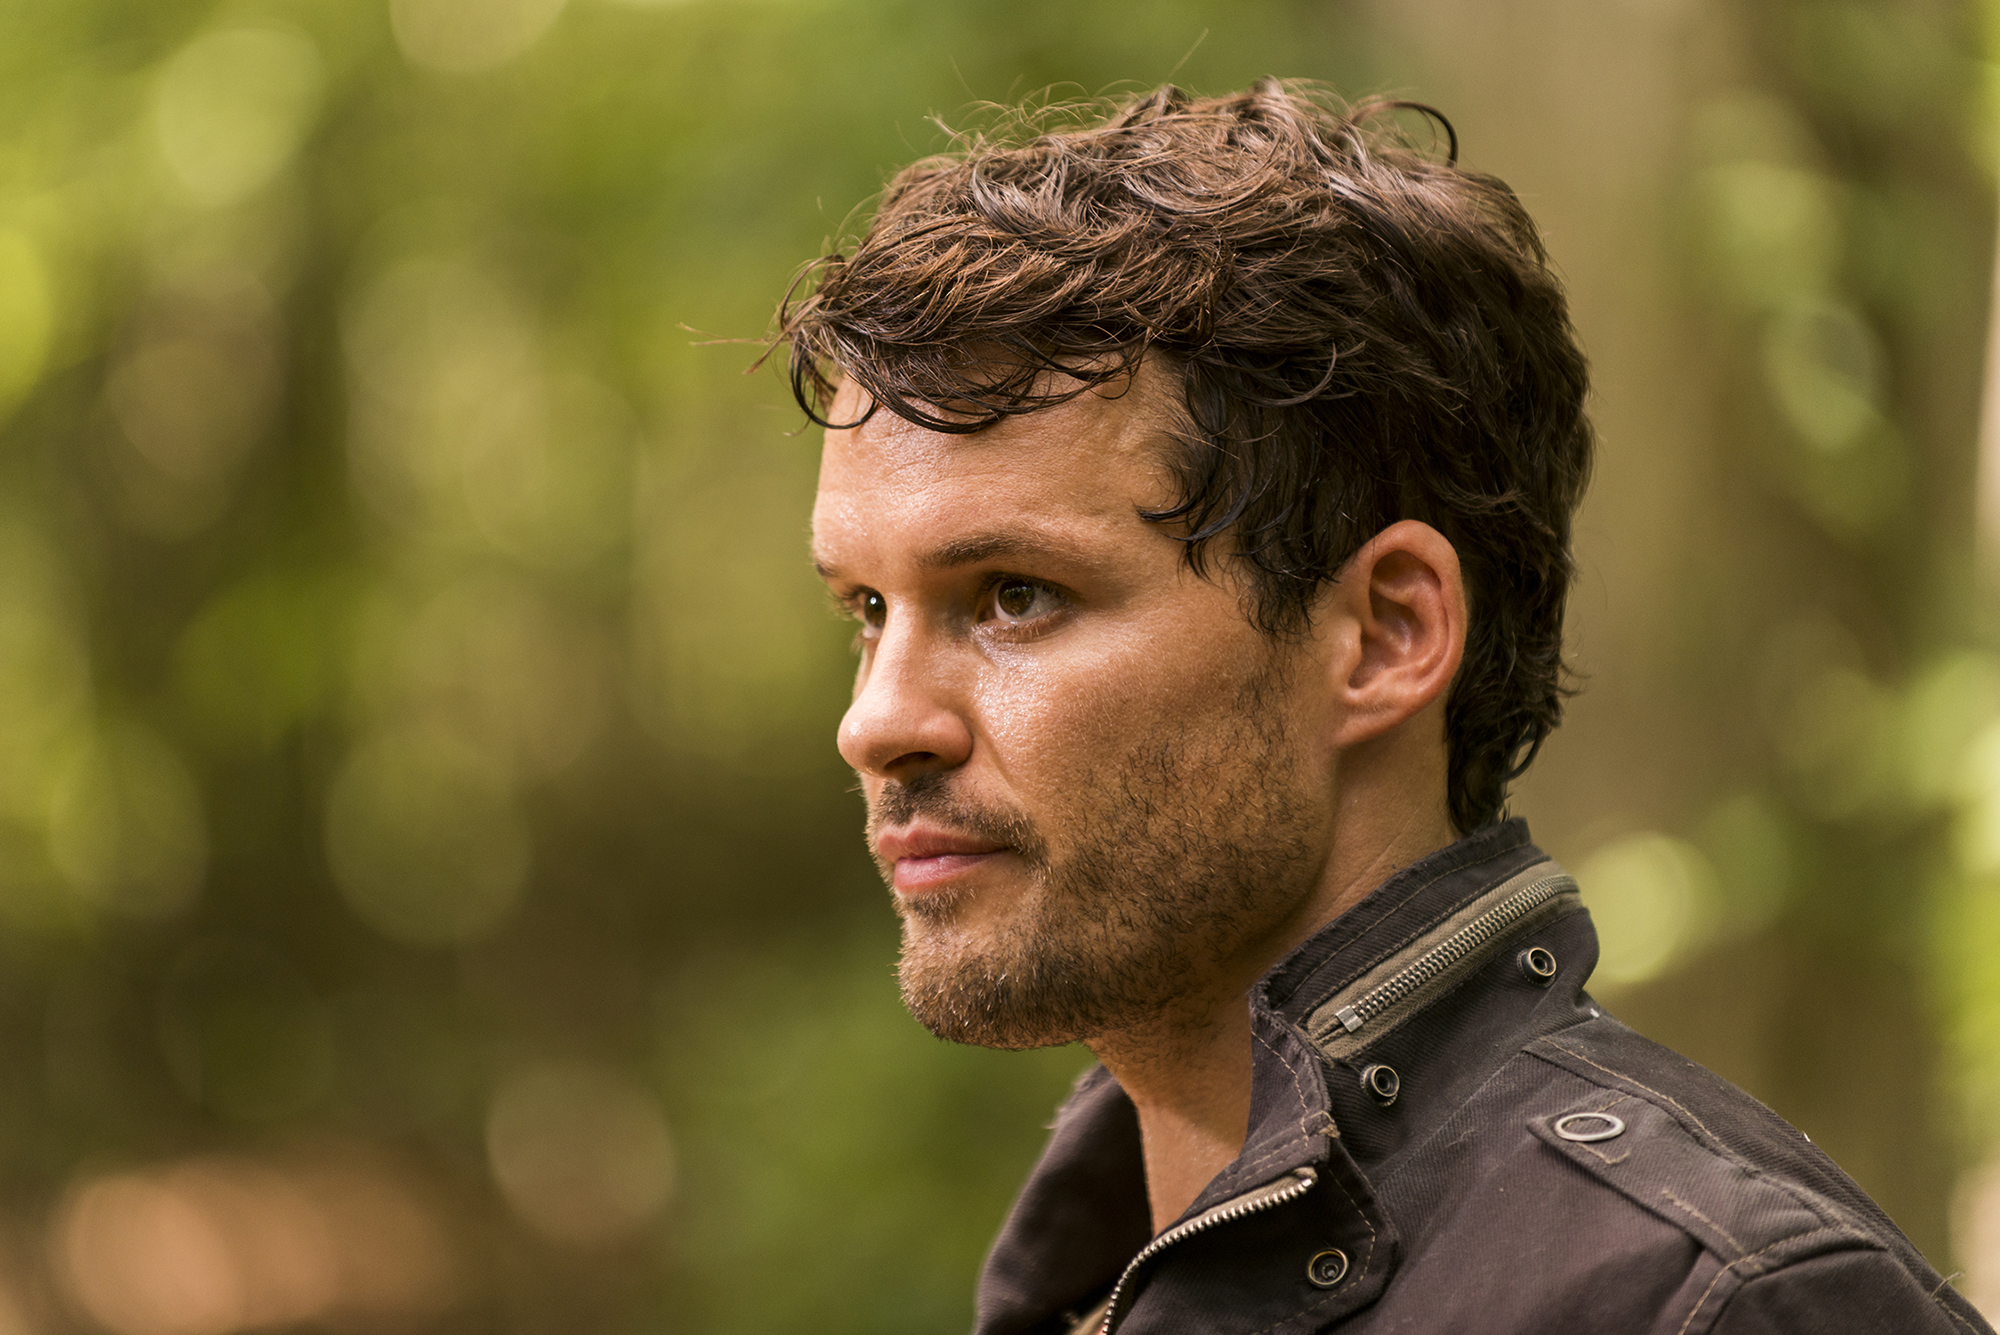 Austin Nichols as Spencer Monroe - The Walking Dead